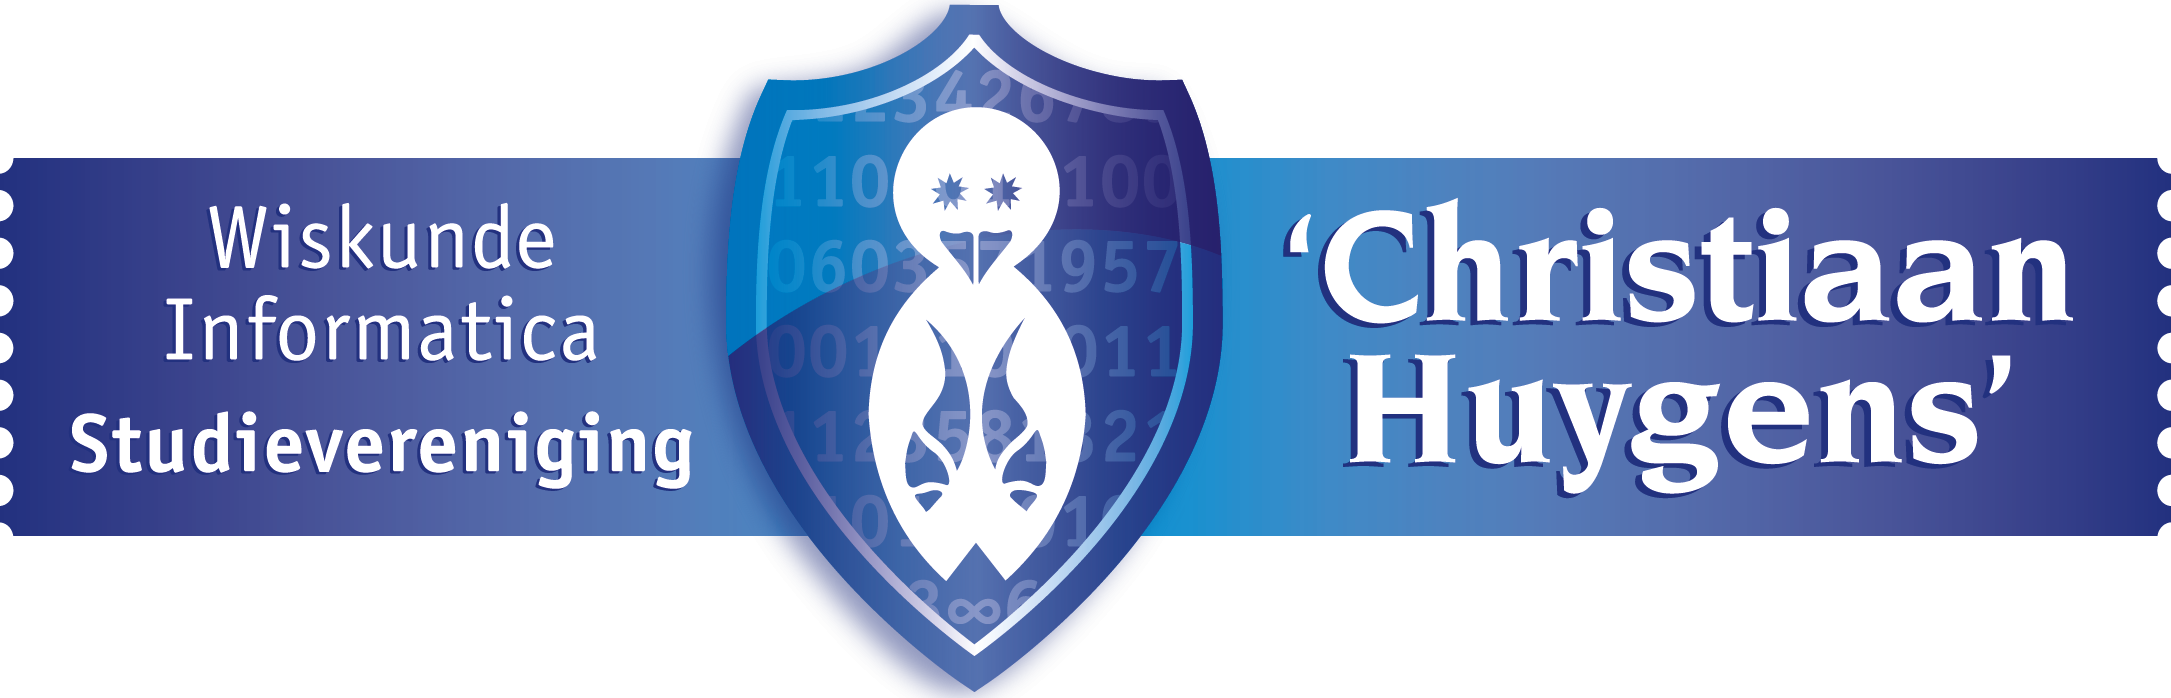 cropped-cropped-ch-logo1-1.png